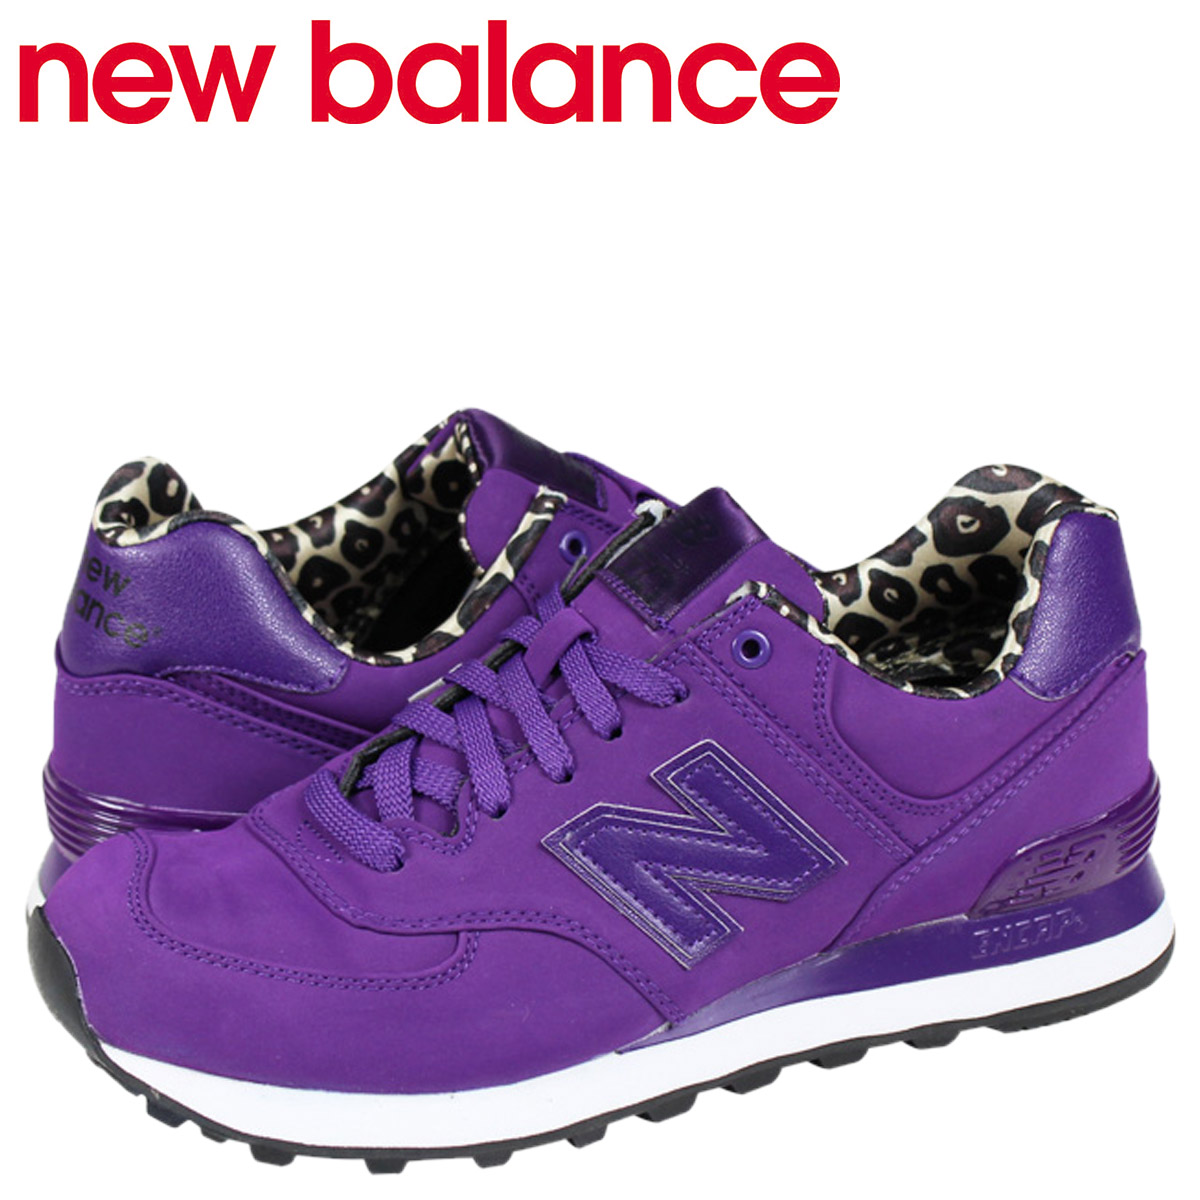 women's new balance 574 high roller